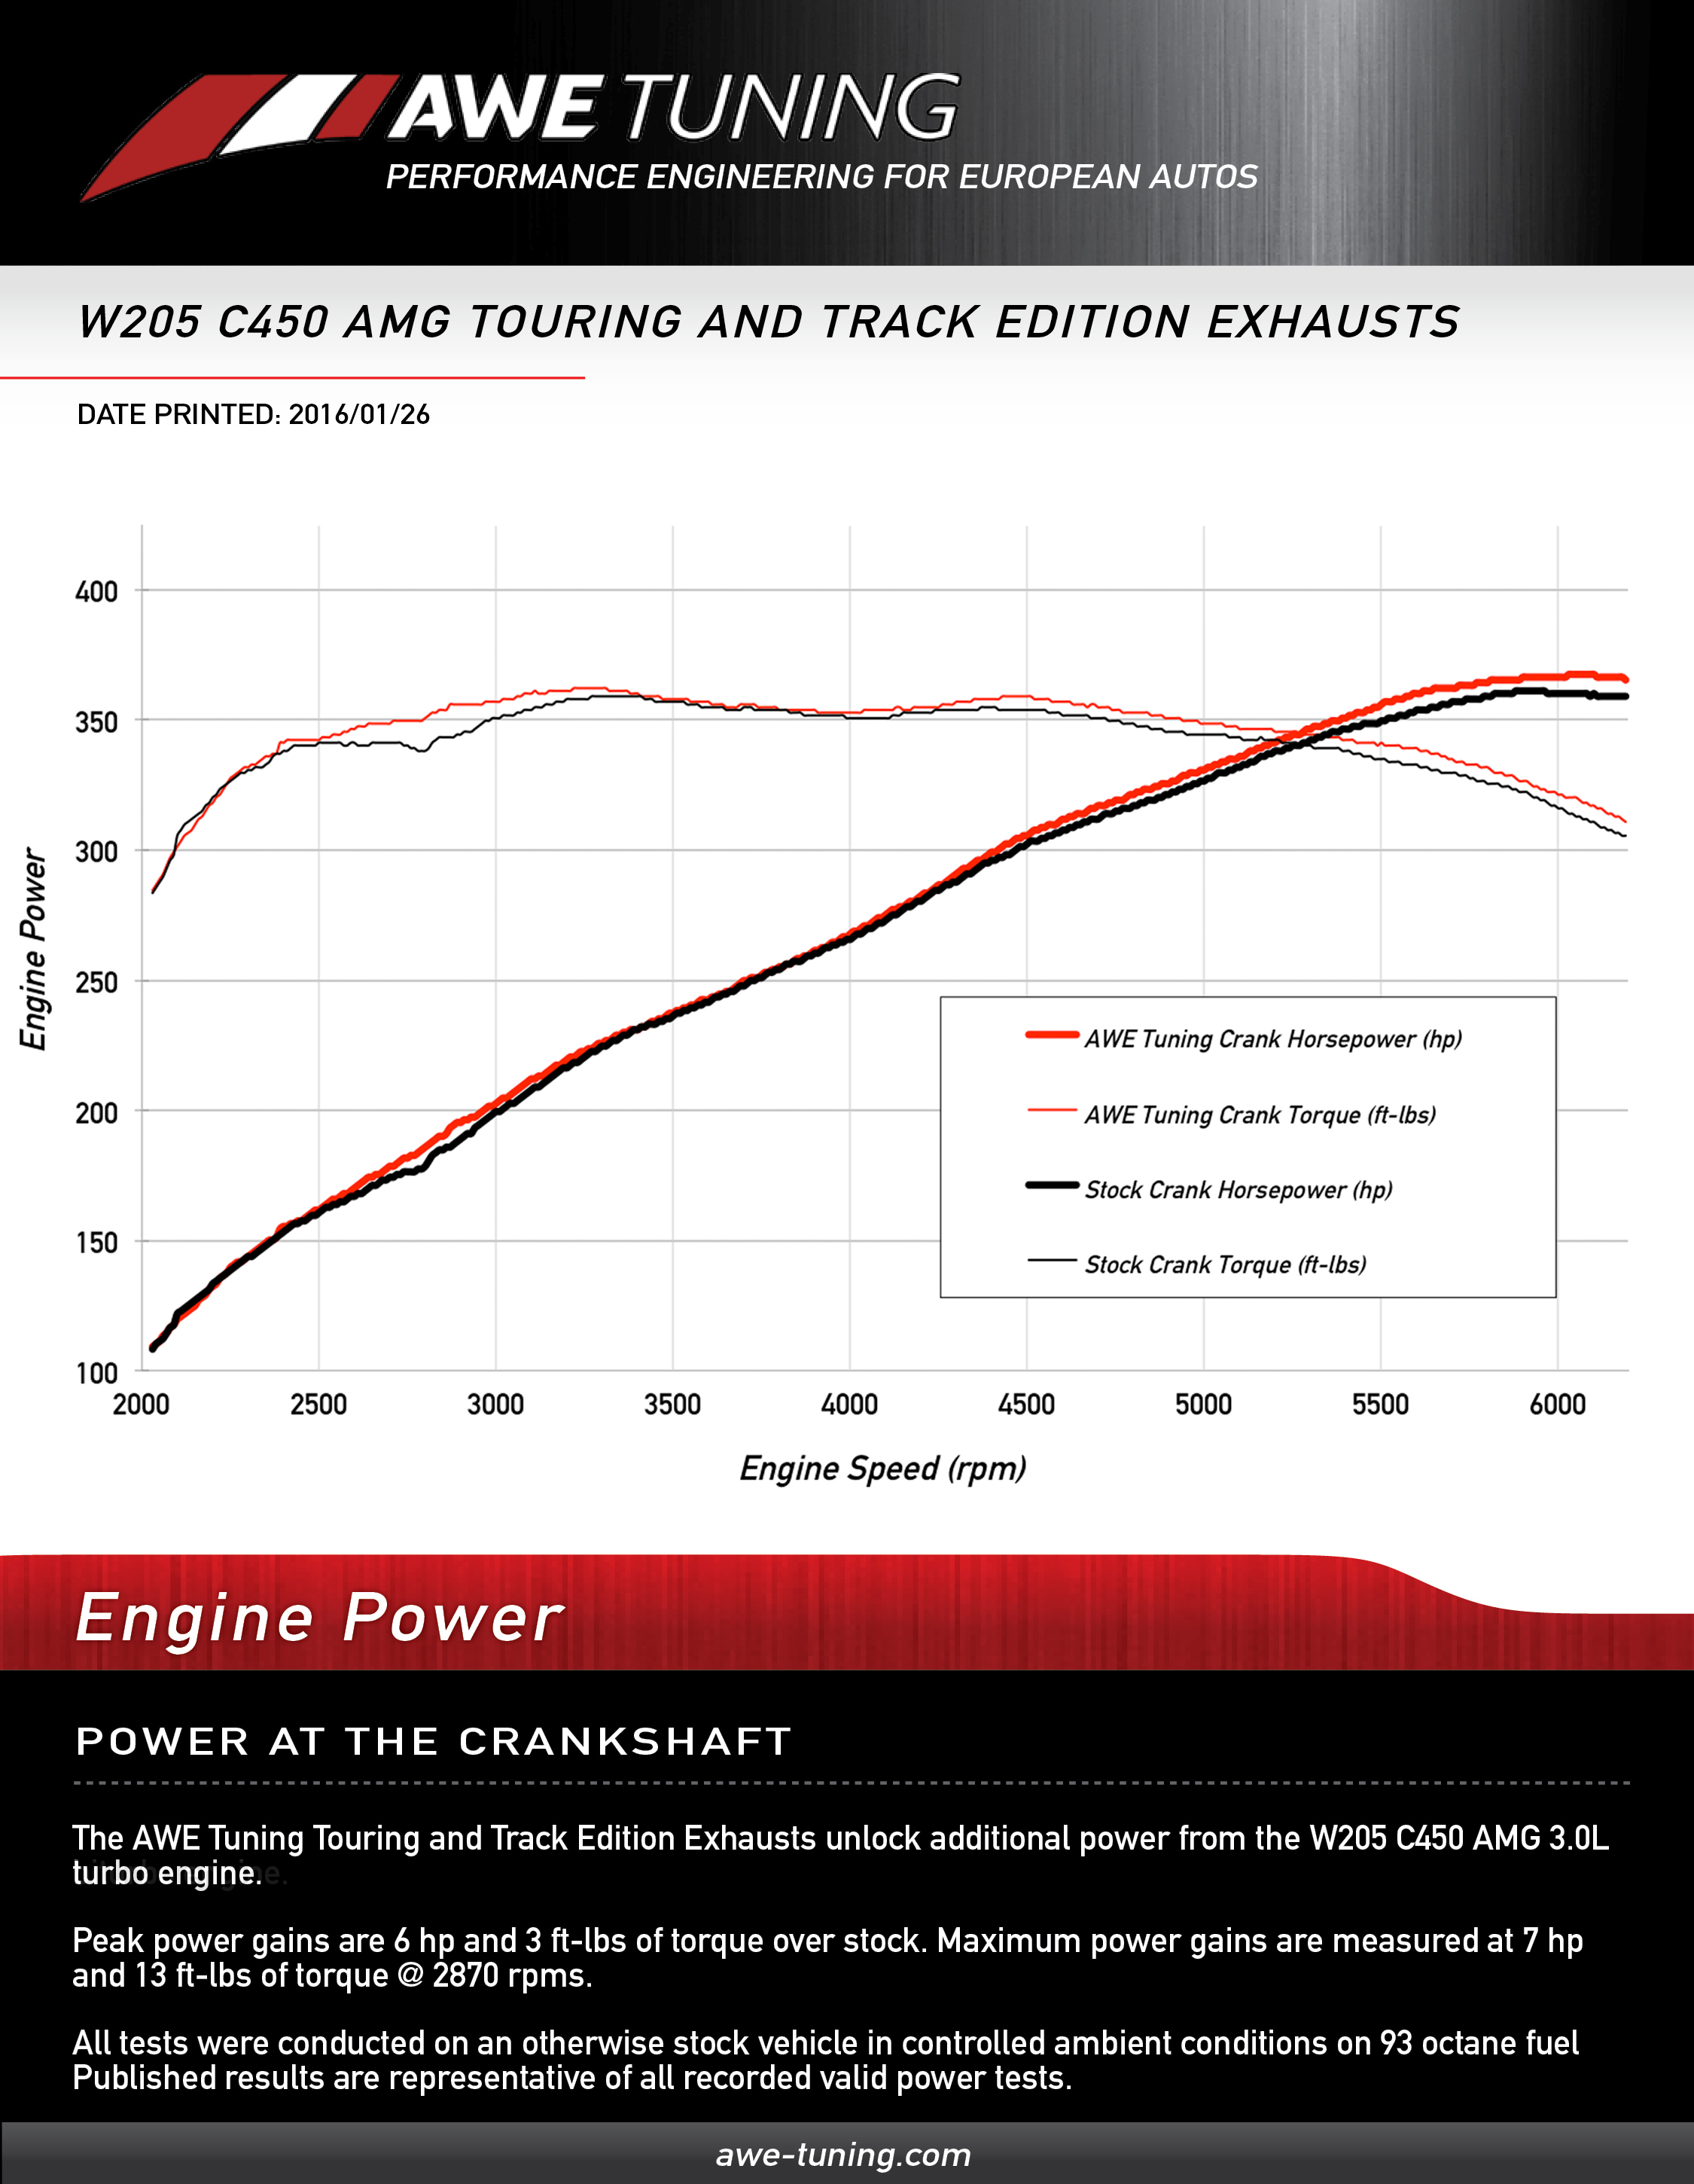 Crank Horsepower Gains for the AWE Tuning C450 AMG Exhaust System